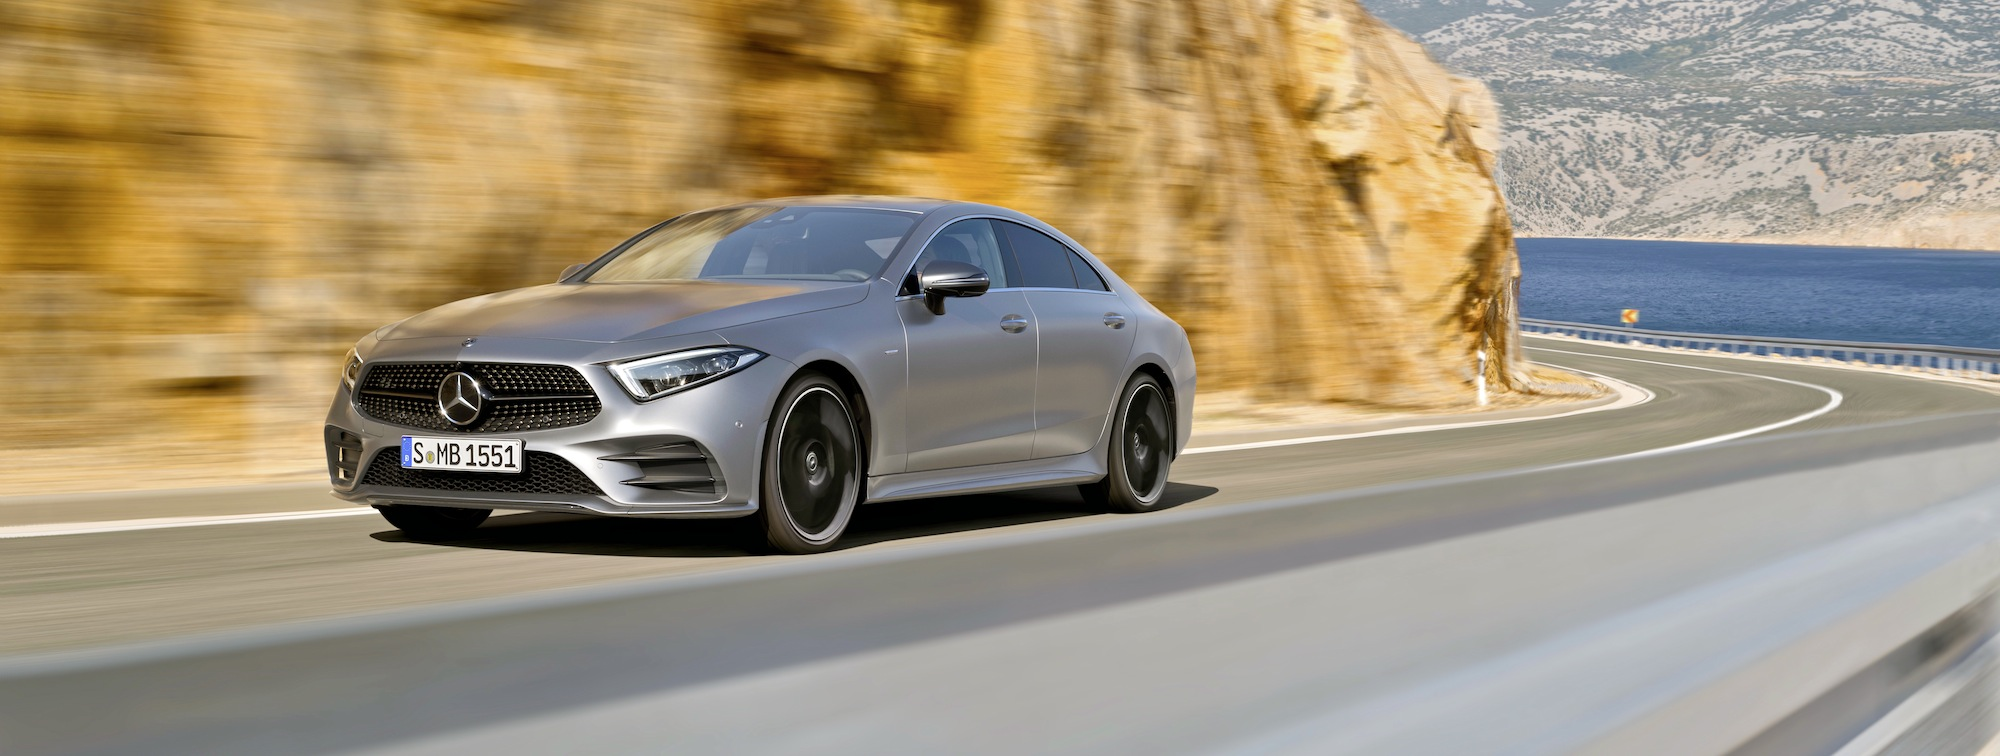 2019 Mercedes-Benz CLS: Sexy Four-Door Luxury Car Full Of Future Tech